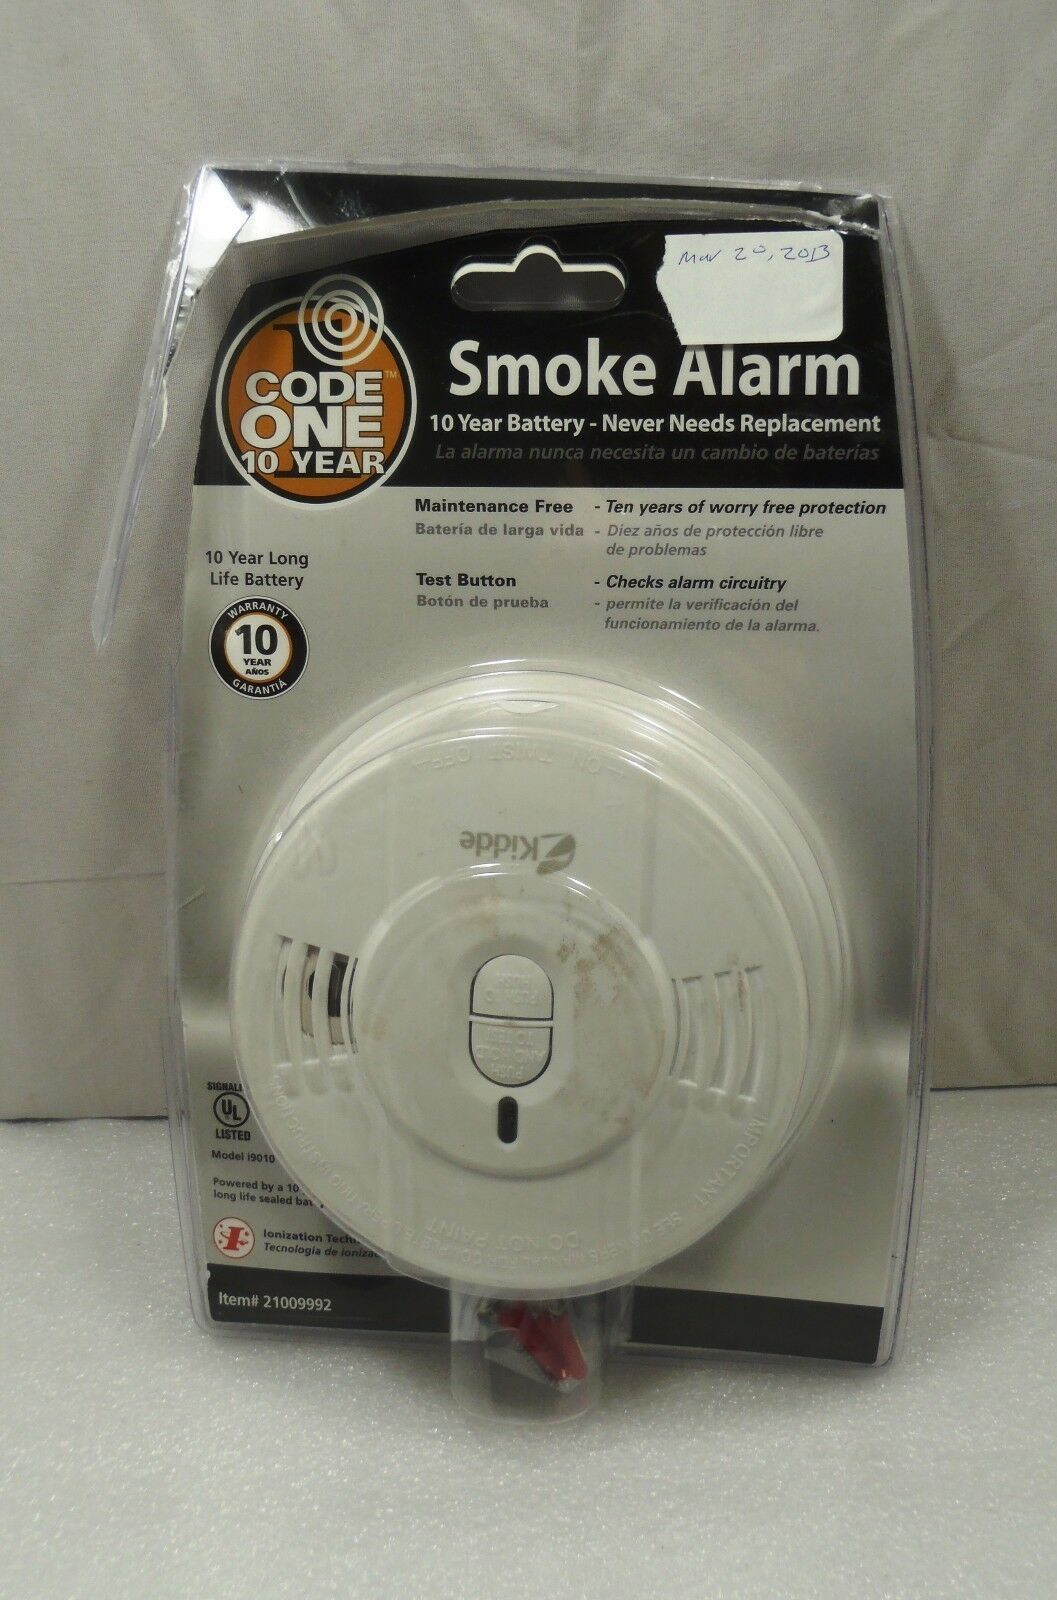 Smoke Alarm Smoke Alarm Ideas Smokealarm Firealarm Code One 10 Year Lithium Ion Battery Operated Ionization Smoke Alarm C Smoke Alarms Alarm Fire Alarm